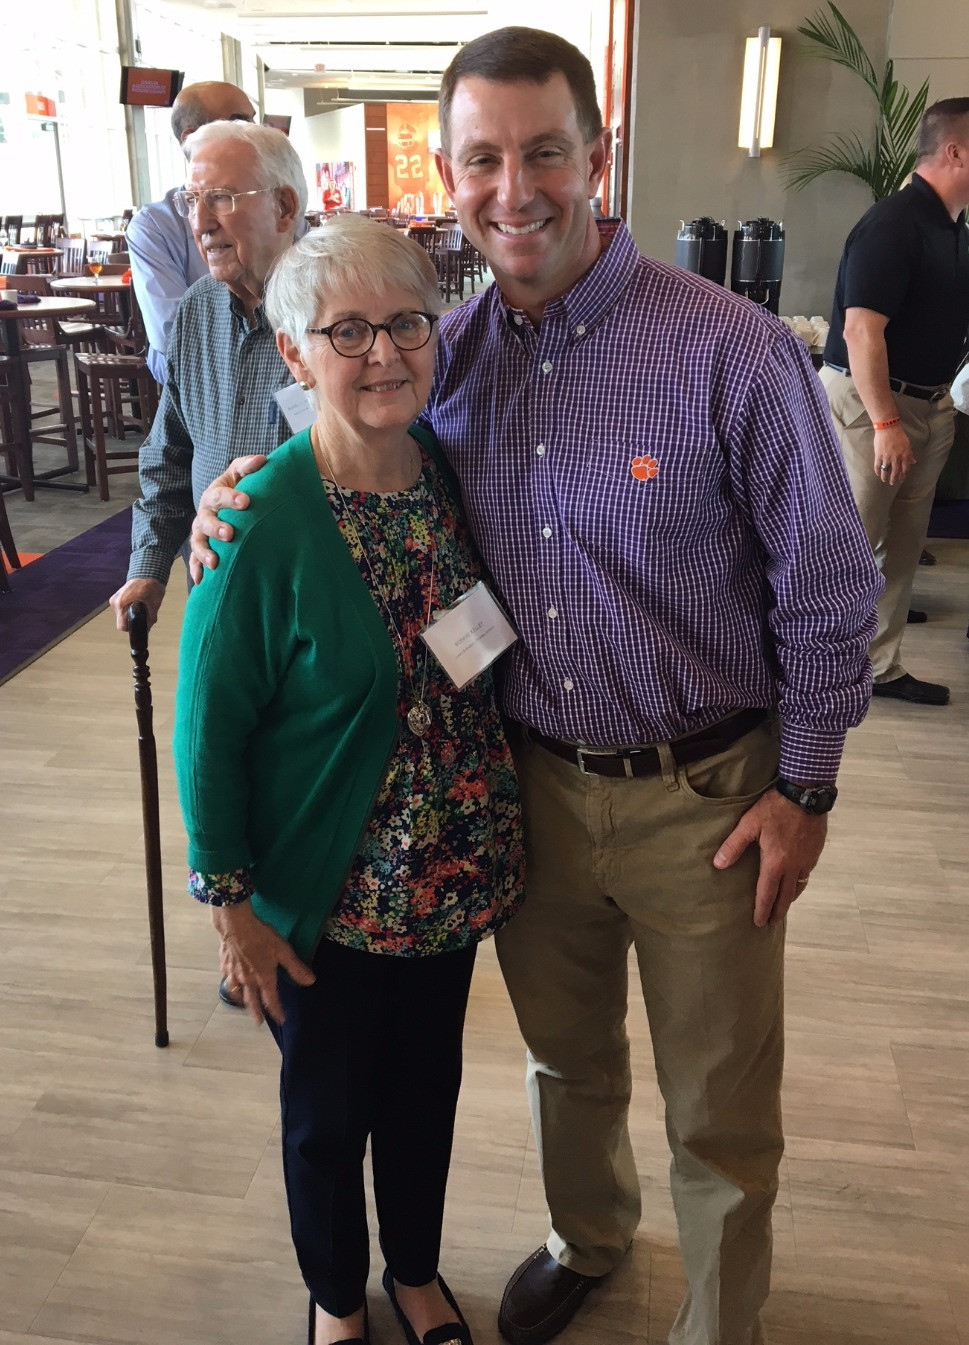 Bonnie Kelley and Dabo Swinney at All-In Team Foundation luncheon